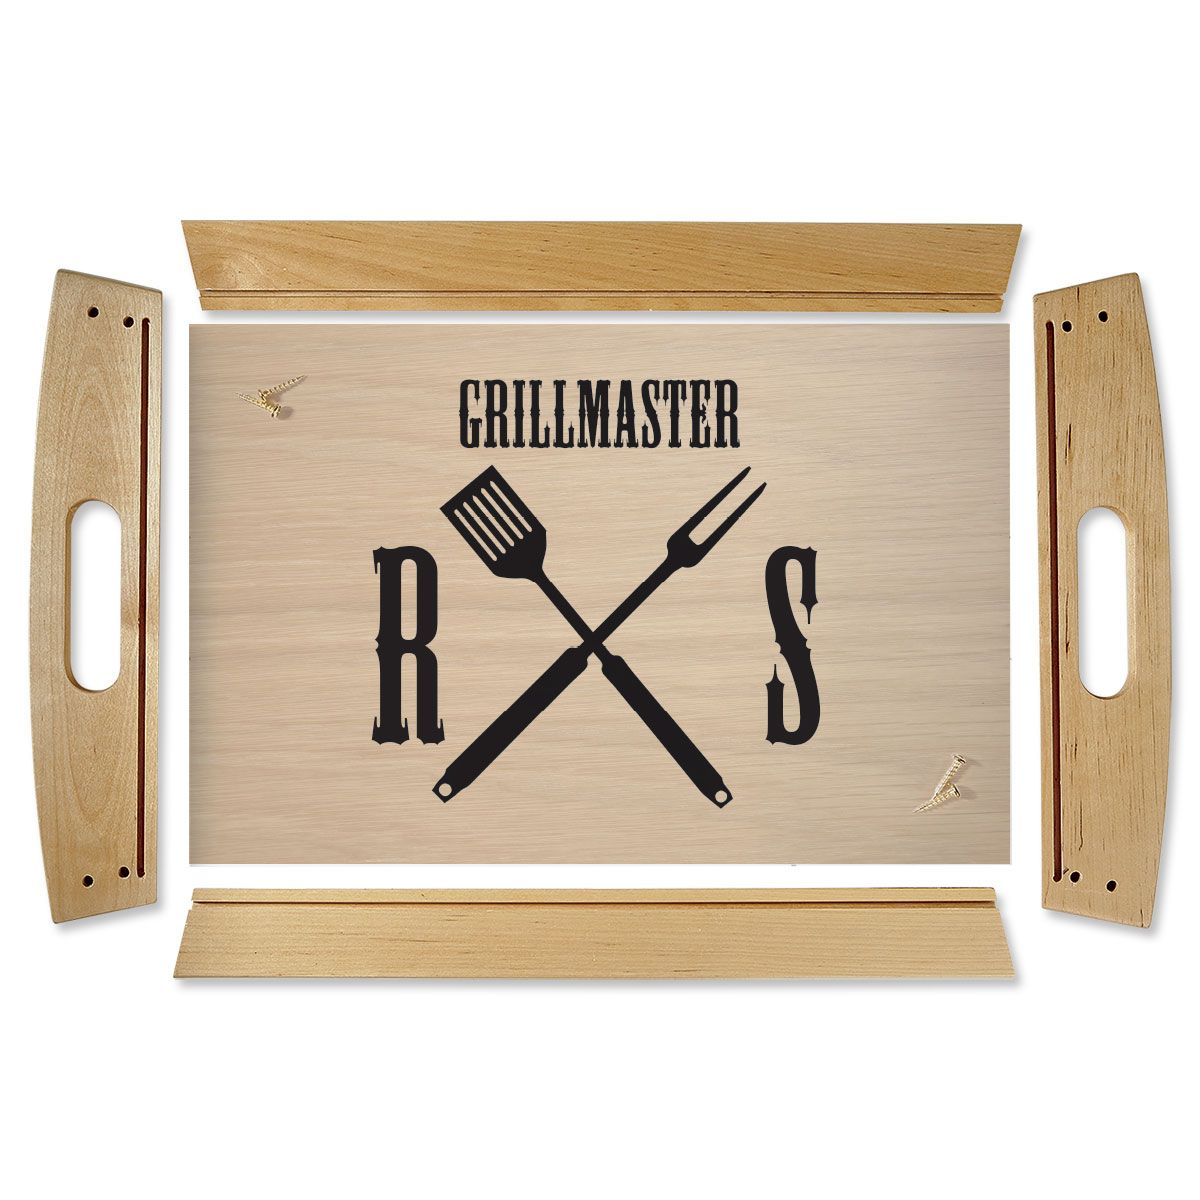 Grillmaster Natural Wood Personalized Serving Tray